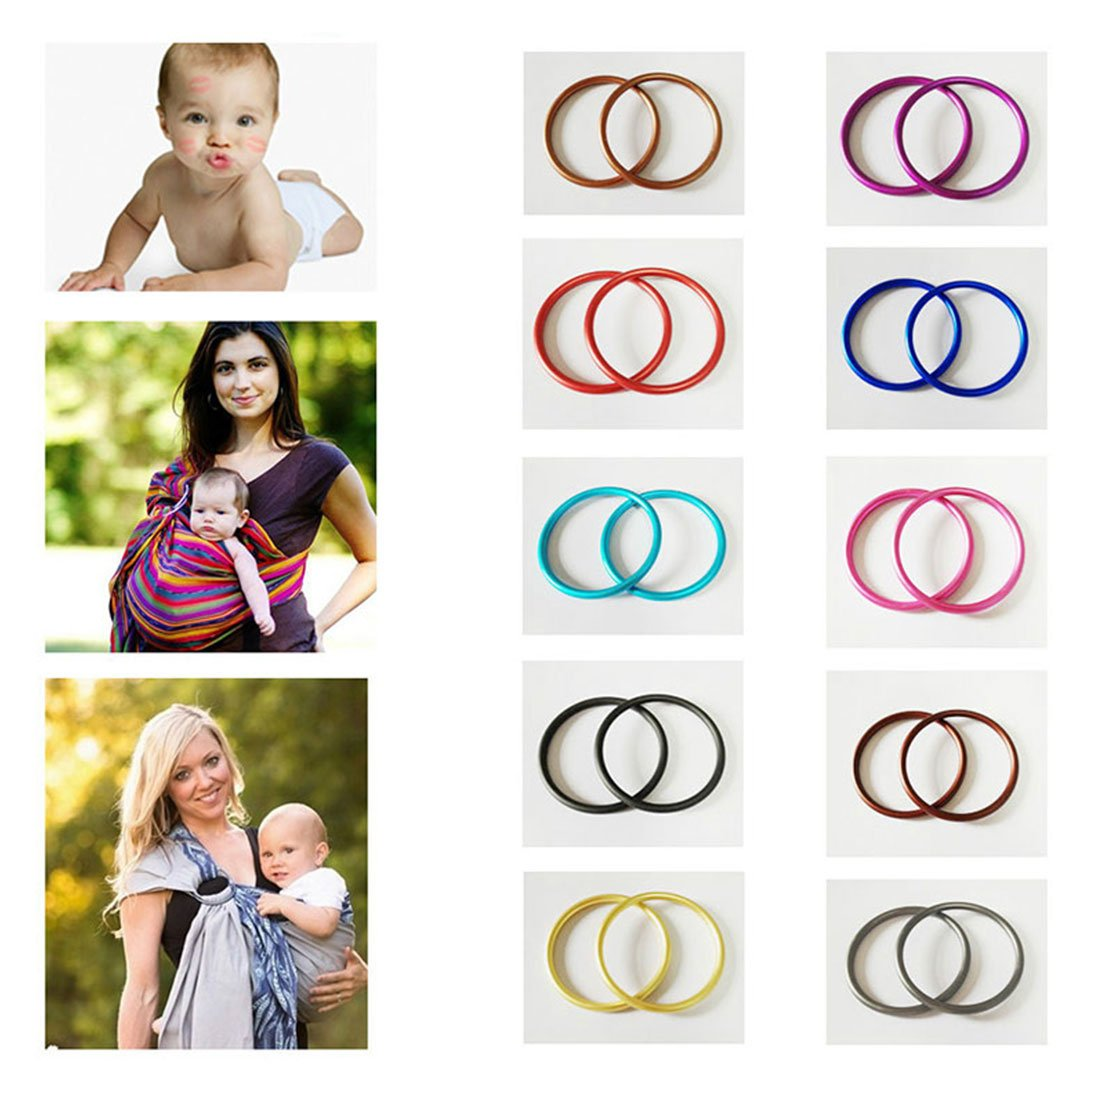 DIY Farmhouse Baby Ring Sling -   15 diy Baby carrier ideas